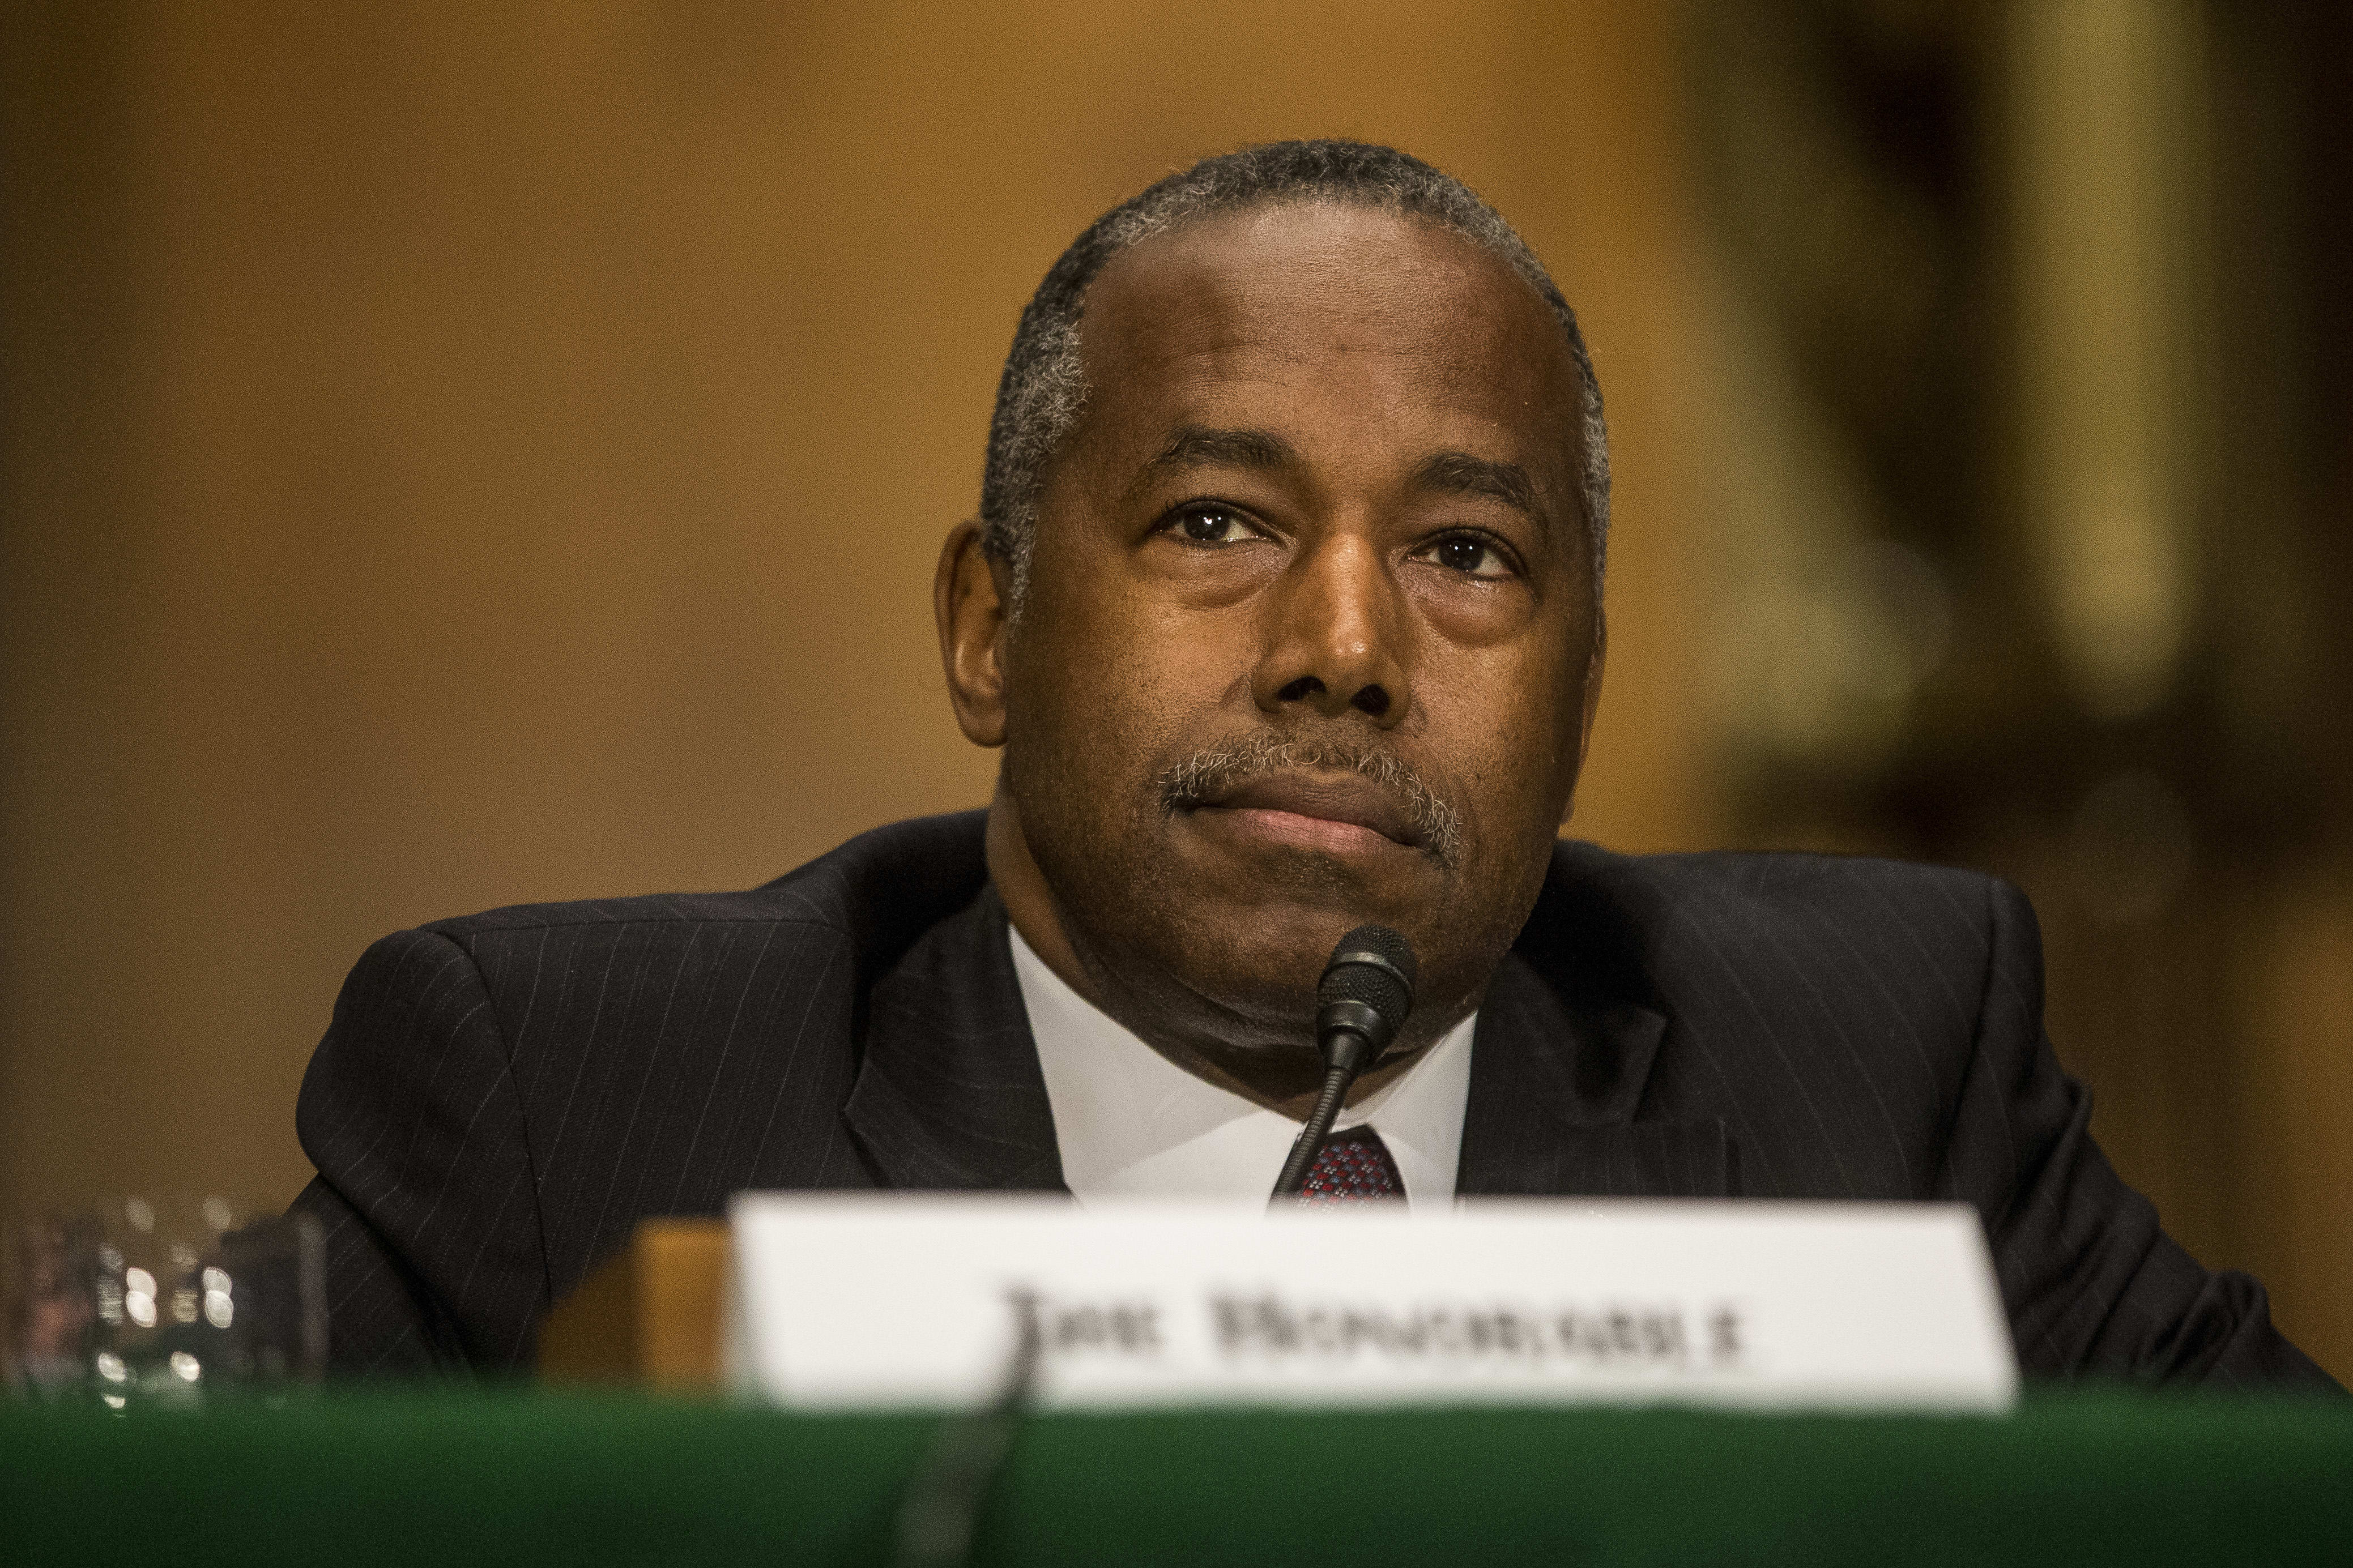 Ben Carson cleared in probe of $31,000 HUD dining room splurge